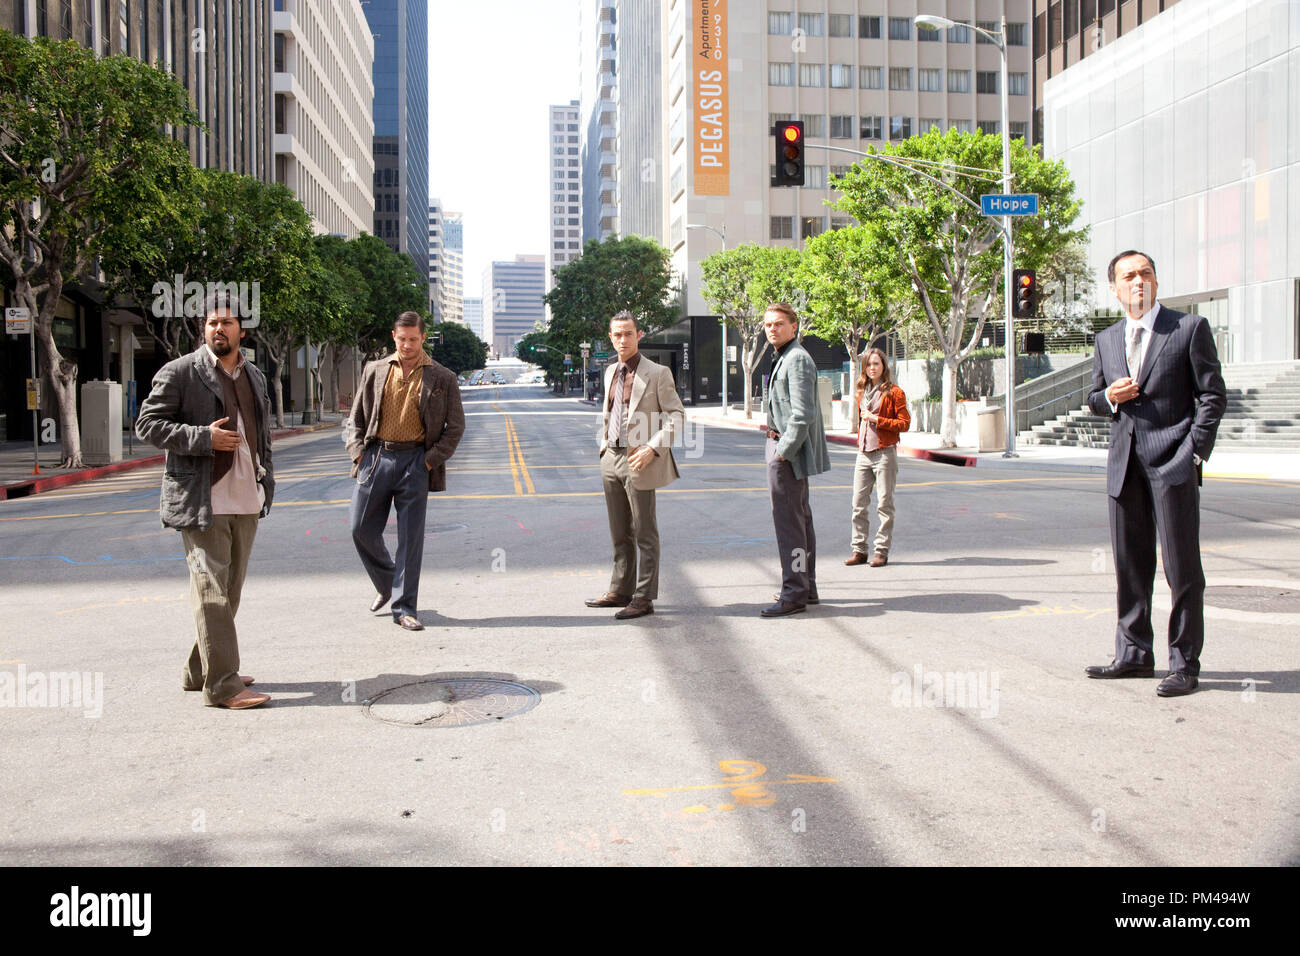 """(L-r) DILEEP RAO as Yusuf, TOM HARDY as Eames, JOSEPH GORDON-LEVITT as Arthur, LEONARDO DiCAPRIO as Cobb, ELLEN PAGE as Ariadne, and KEN WATANABE as Saito in Warner Bros. Pictures' and Legendary Pictures' sci-fi action film """"INCEPTION,"""" a Warner Bros. Pictures release. Stock Photo"""